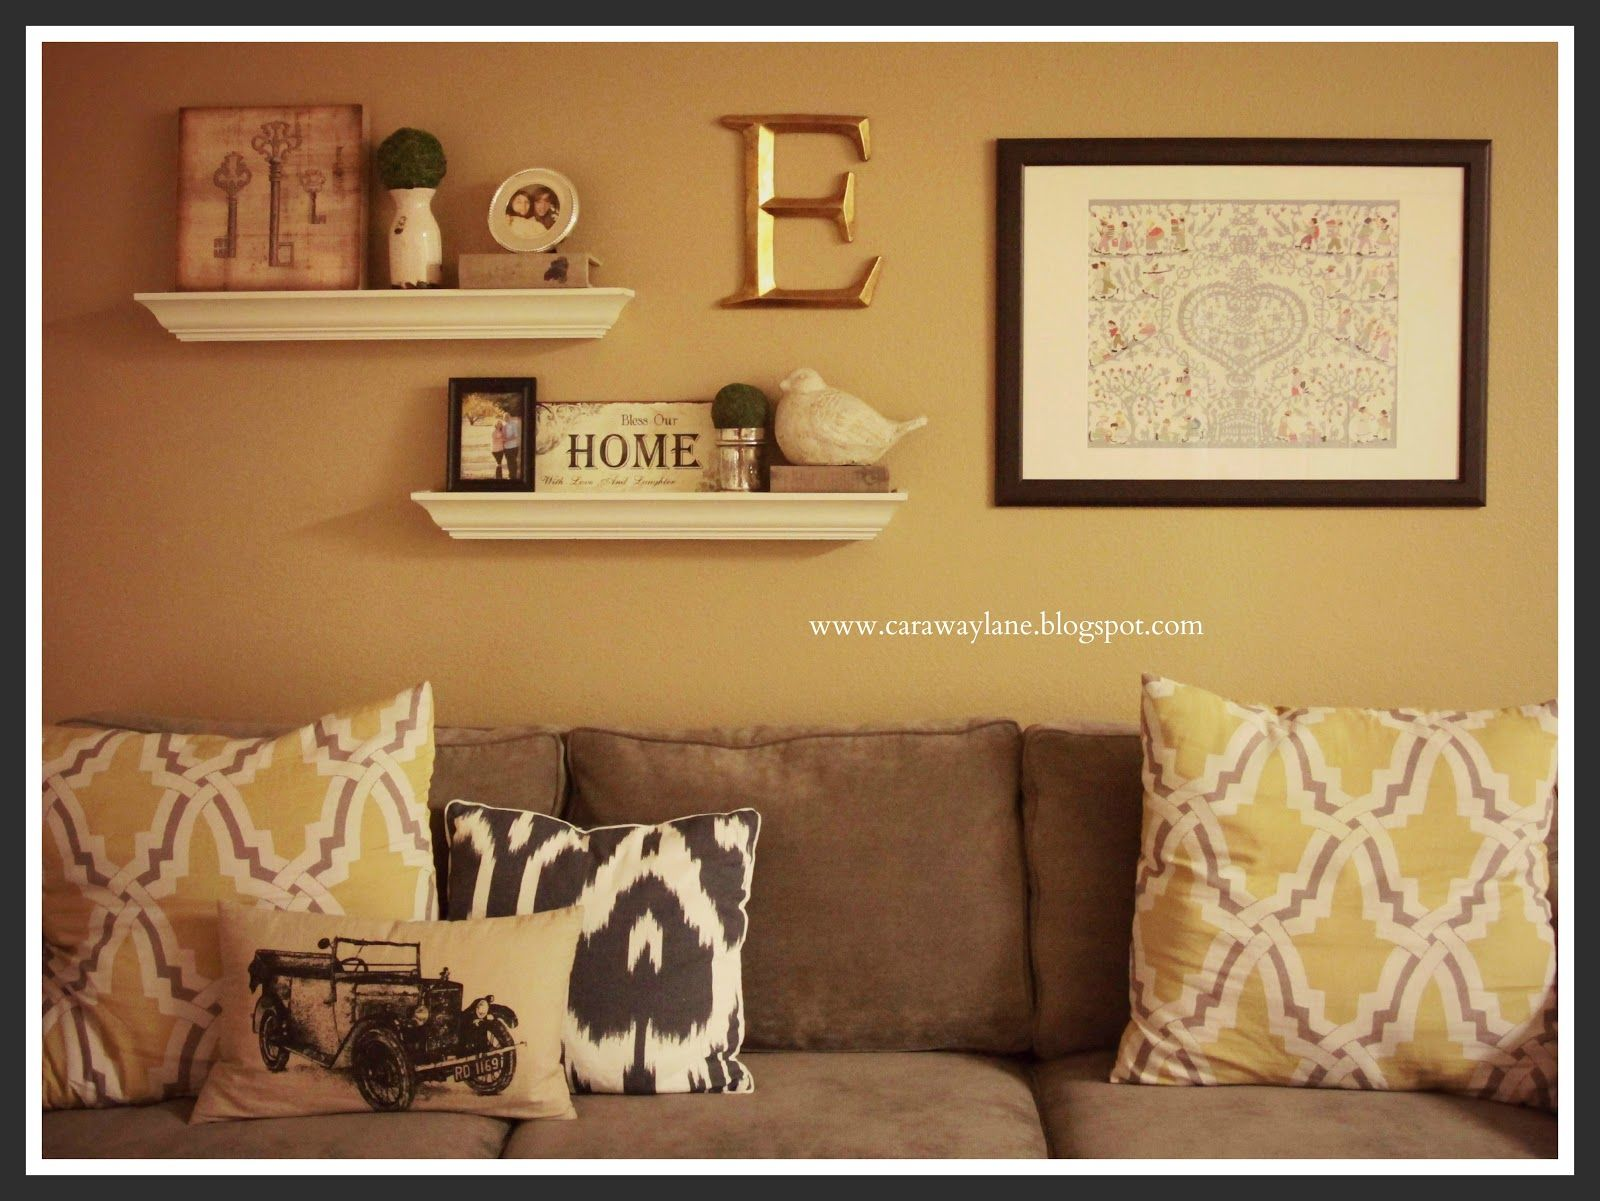 Decorate over a sofa above the couch wall decor future for Best wall decor for living room